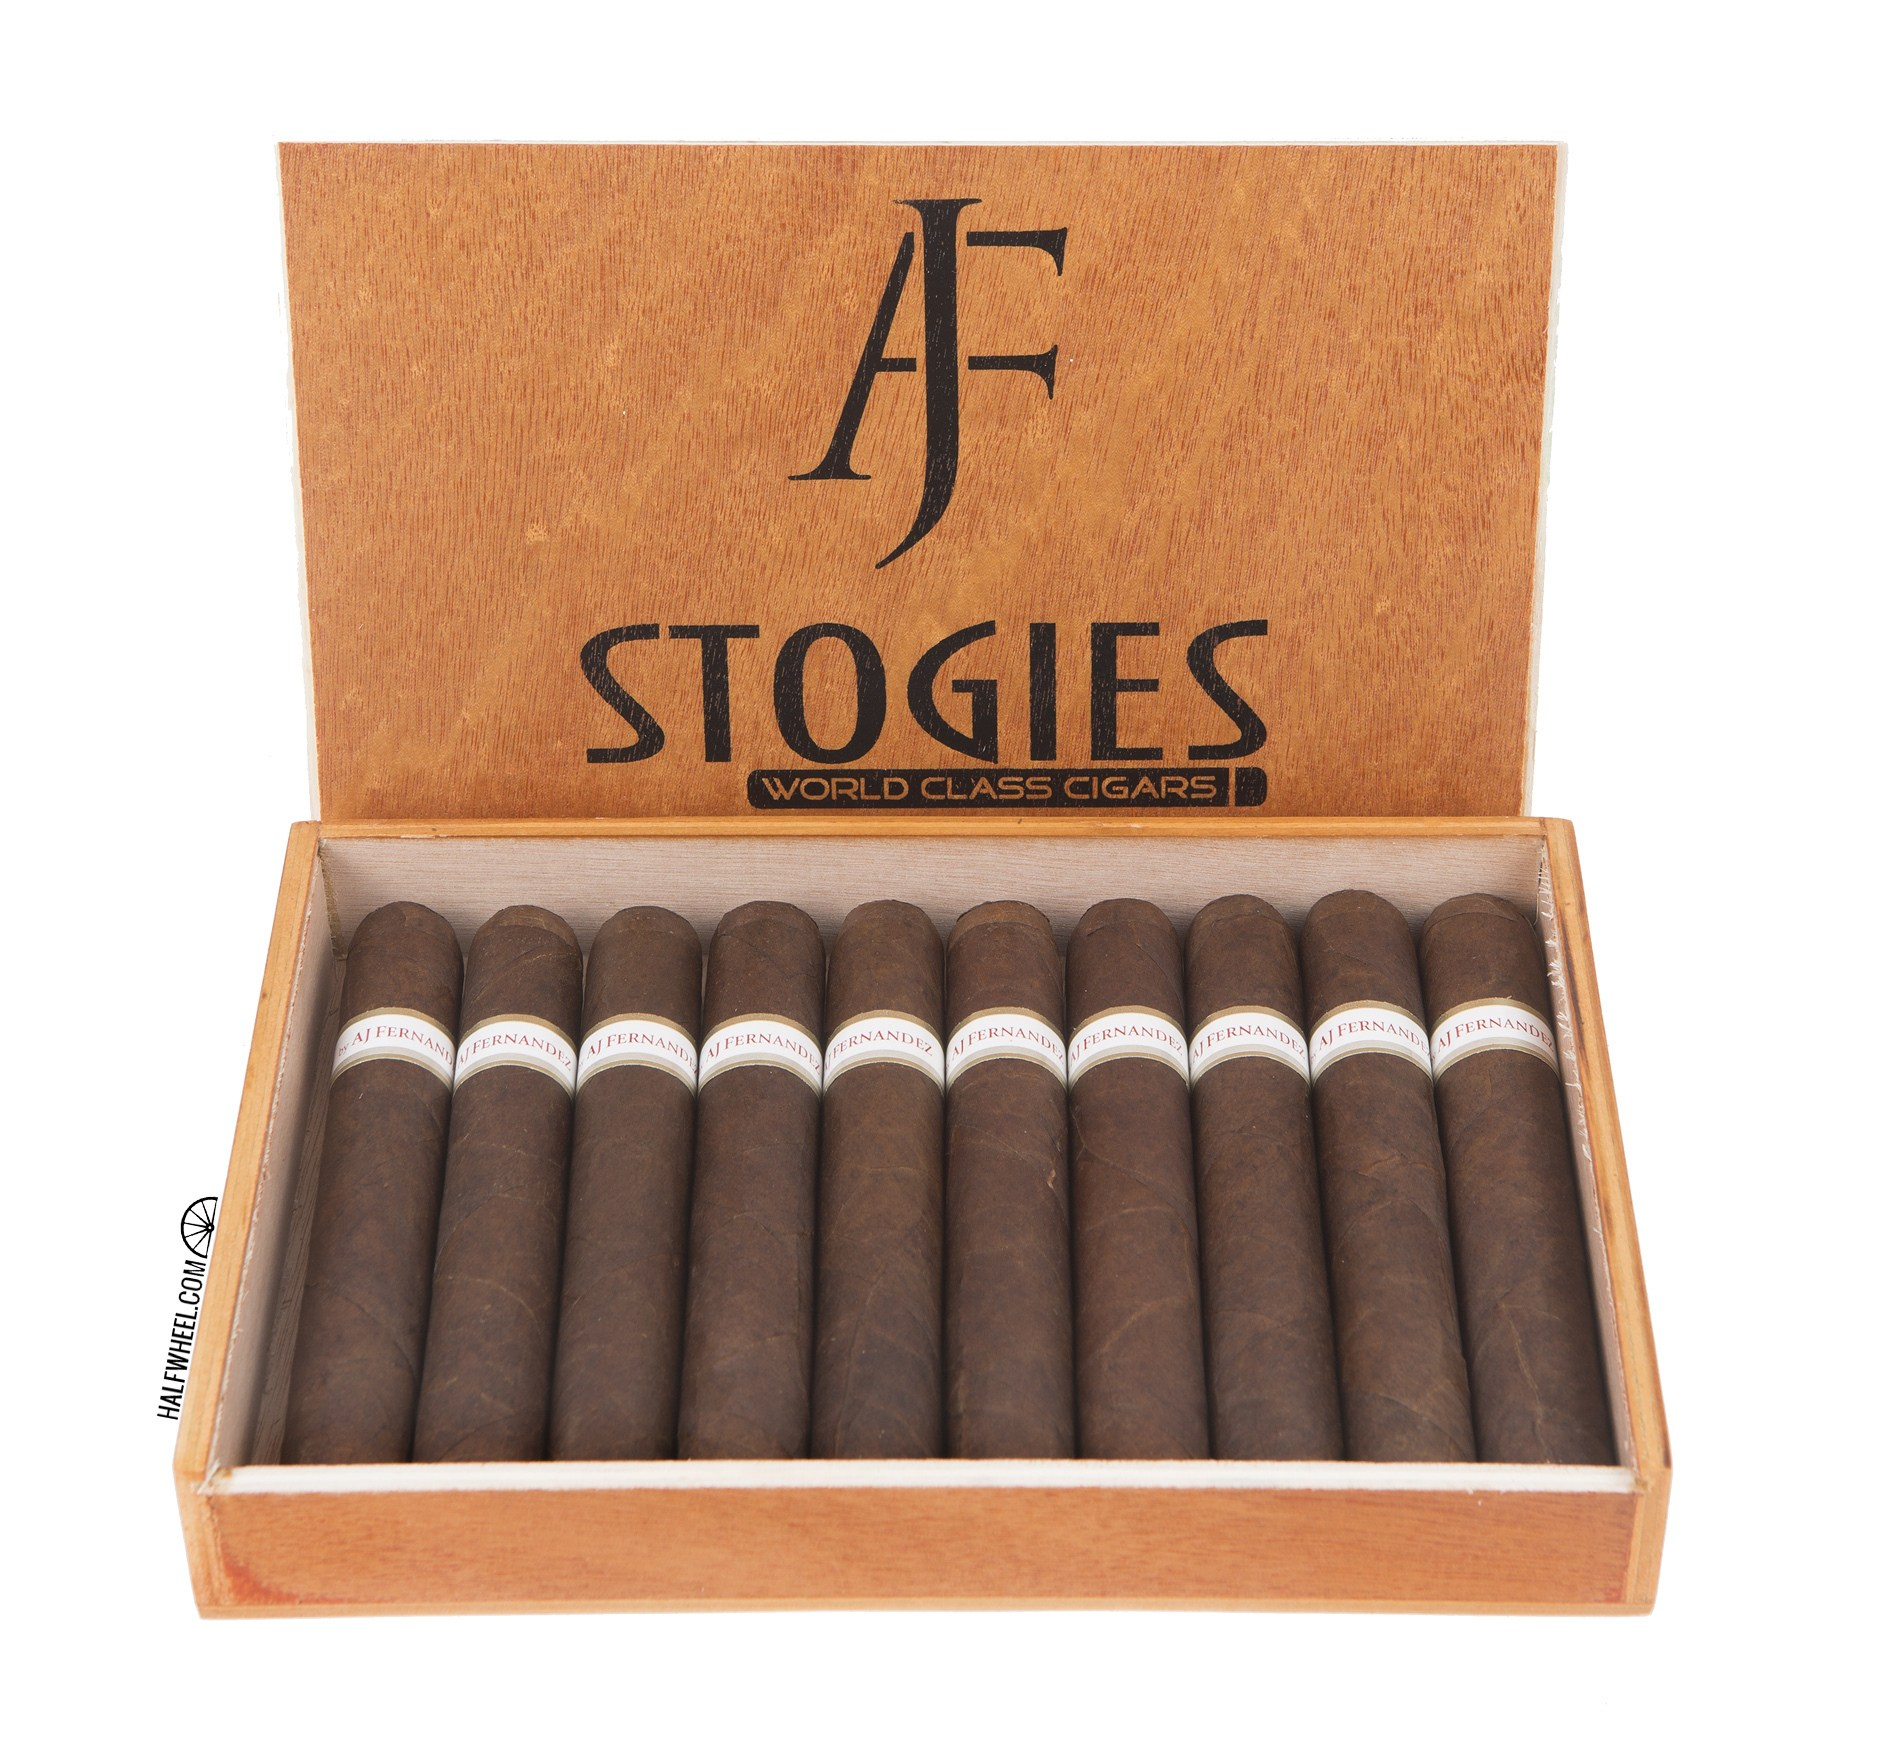 stogies-world-class-cigars-a-j-fernandez-exclusive-box-2